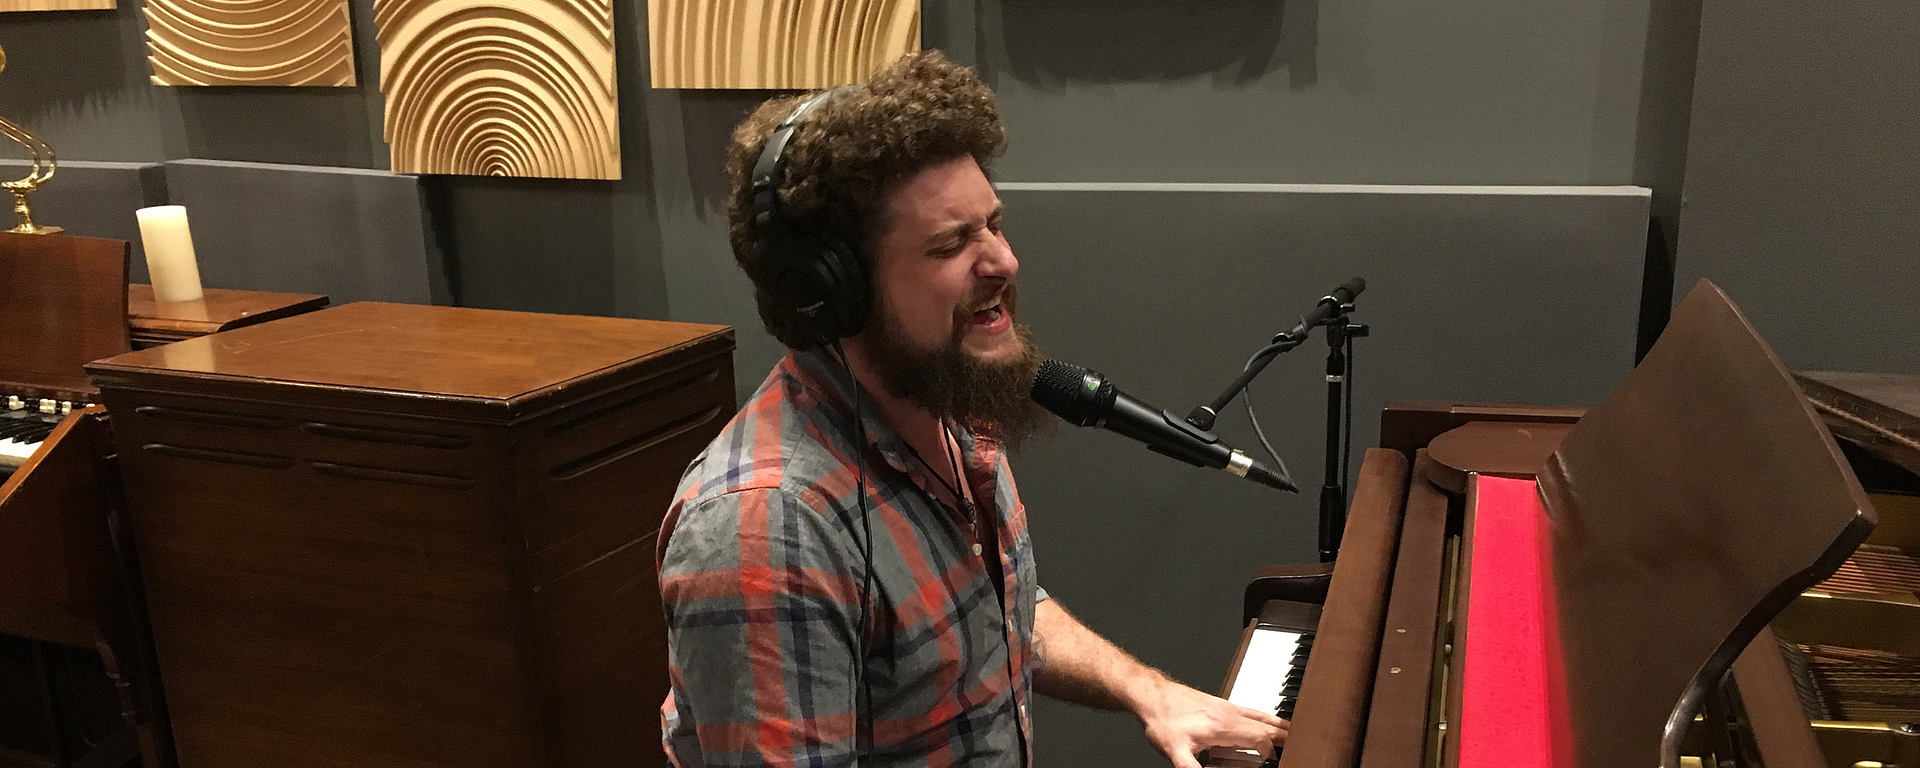 This image shows Steve Maggiora from Robert Jon & The Wreck at the piano in hybrid studios singing into an MTP 740 CM